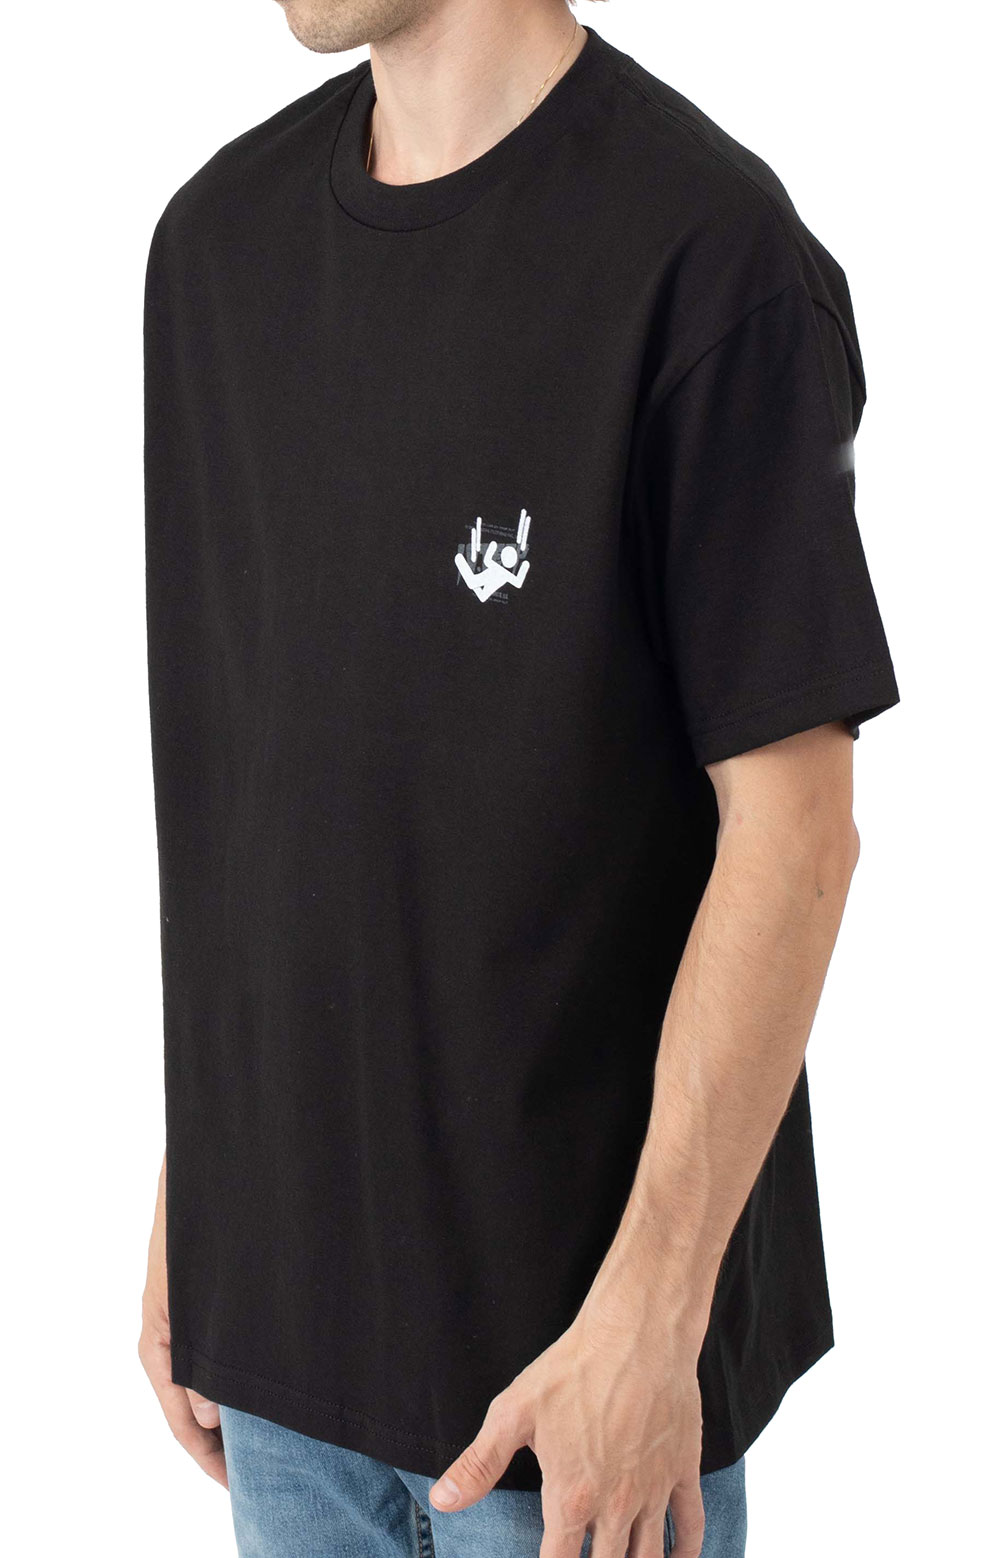 Log In Drop Out T-Shirt - Black 3